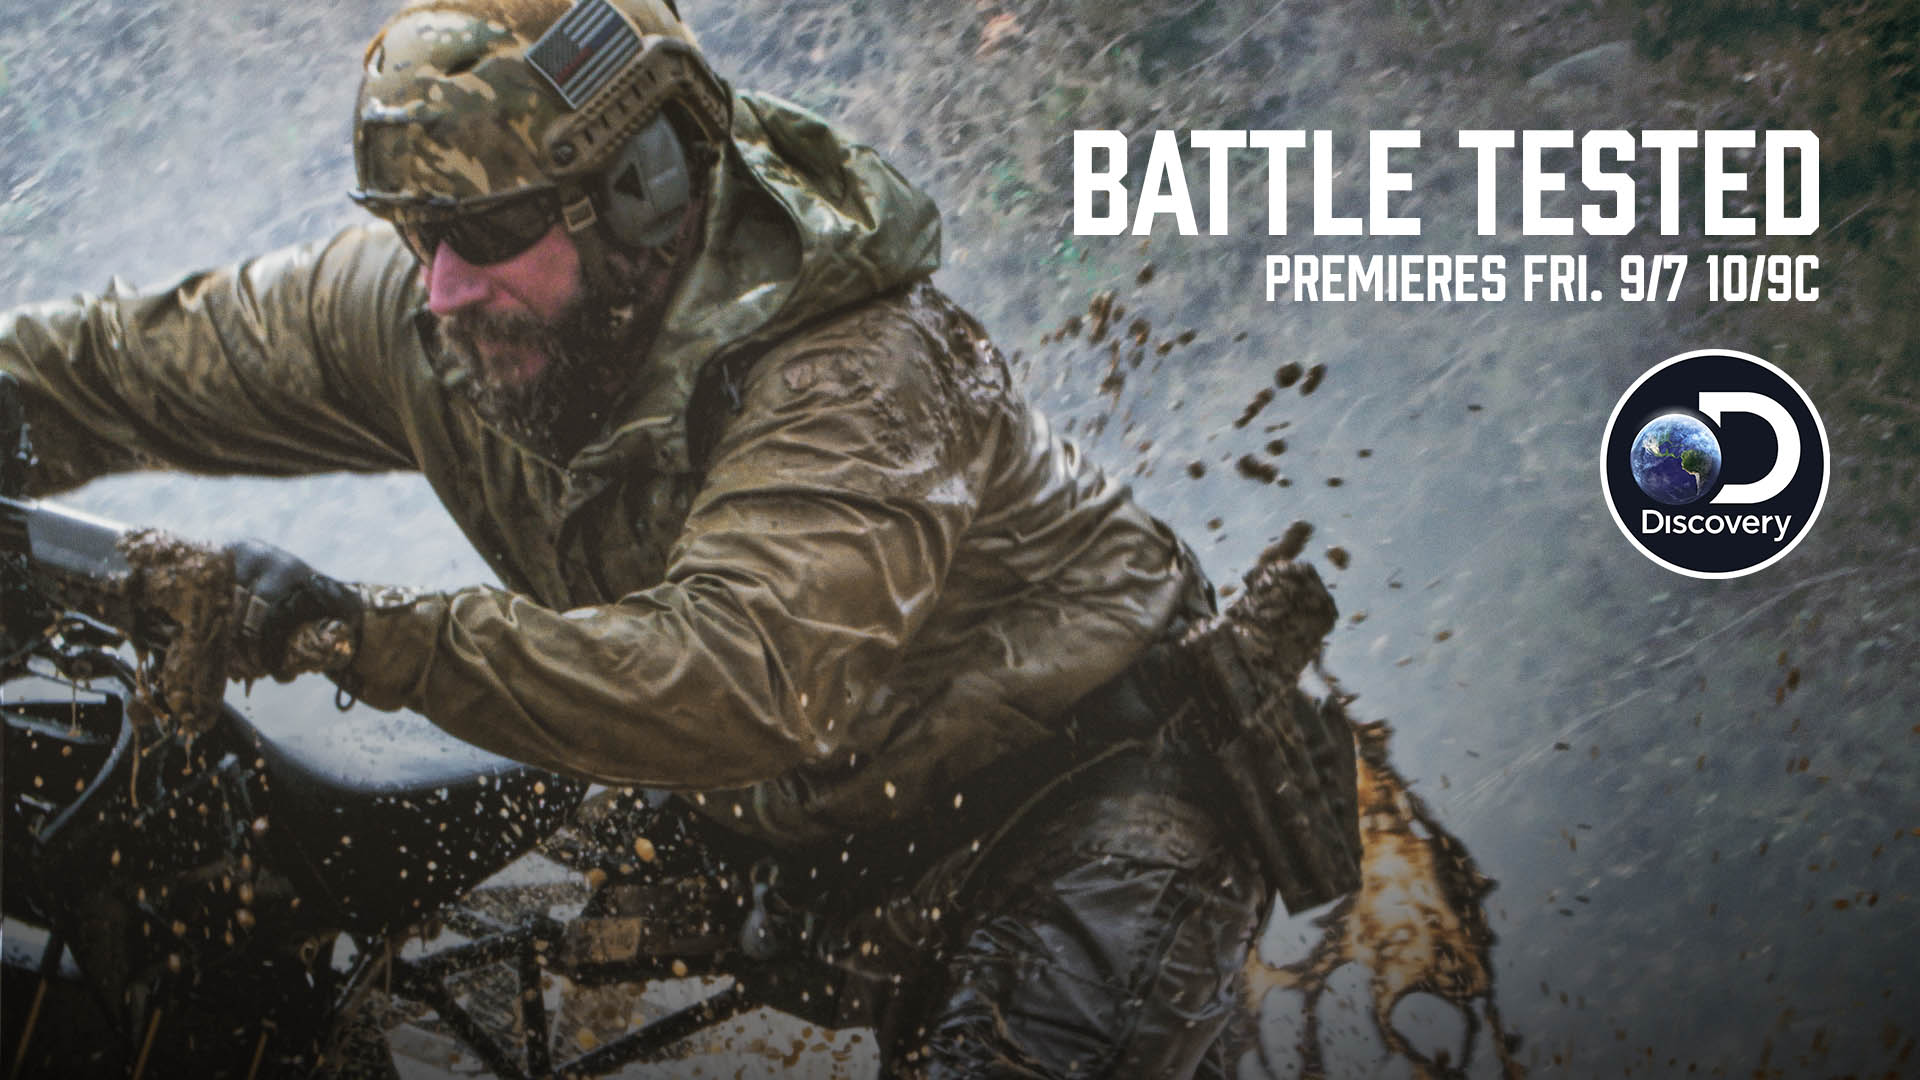 BattleTested-Social-12 copy.jpg